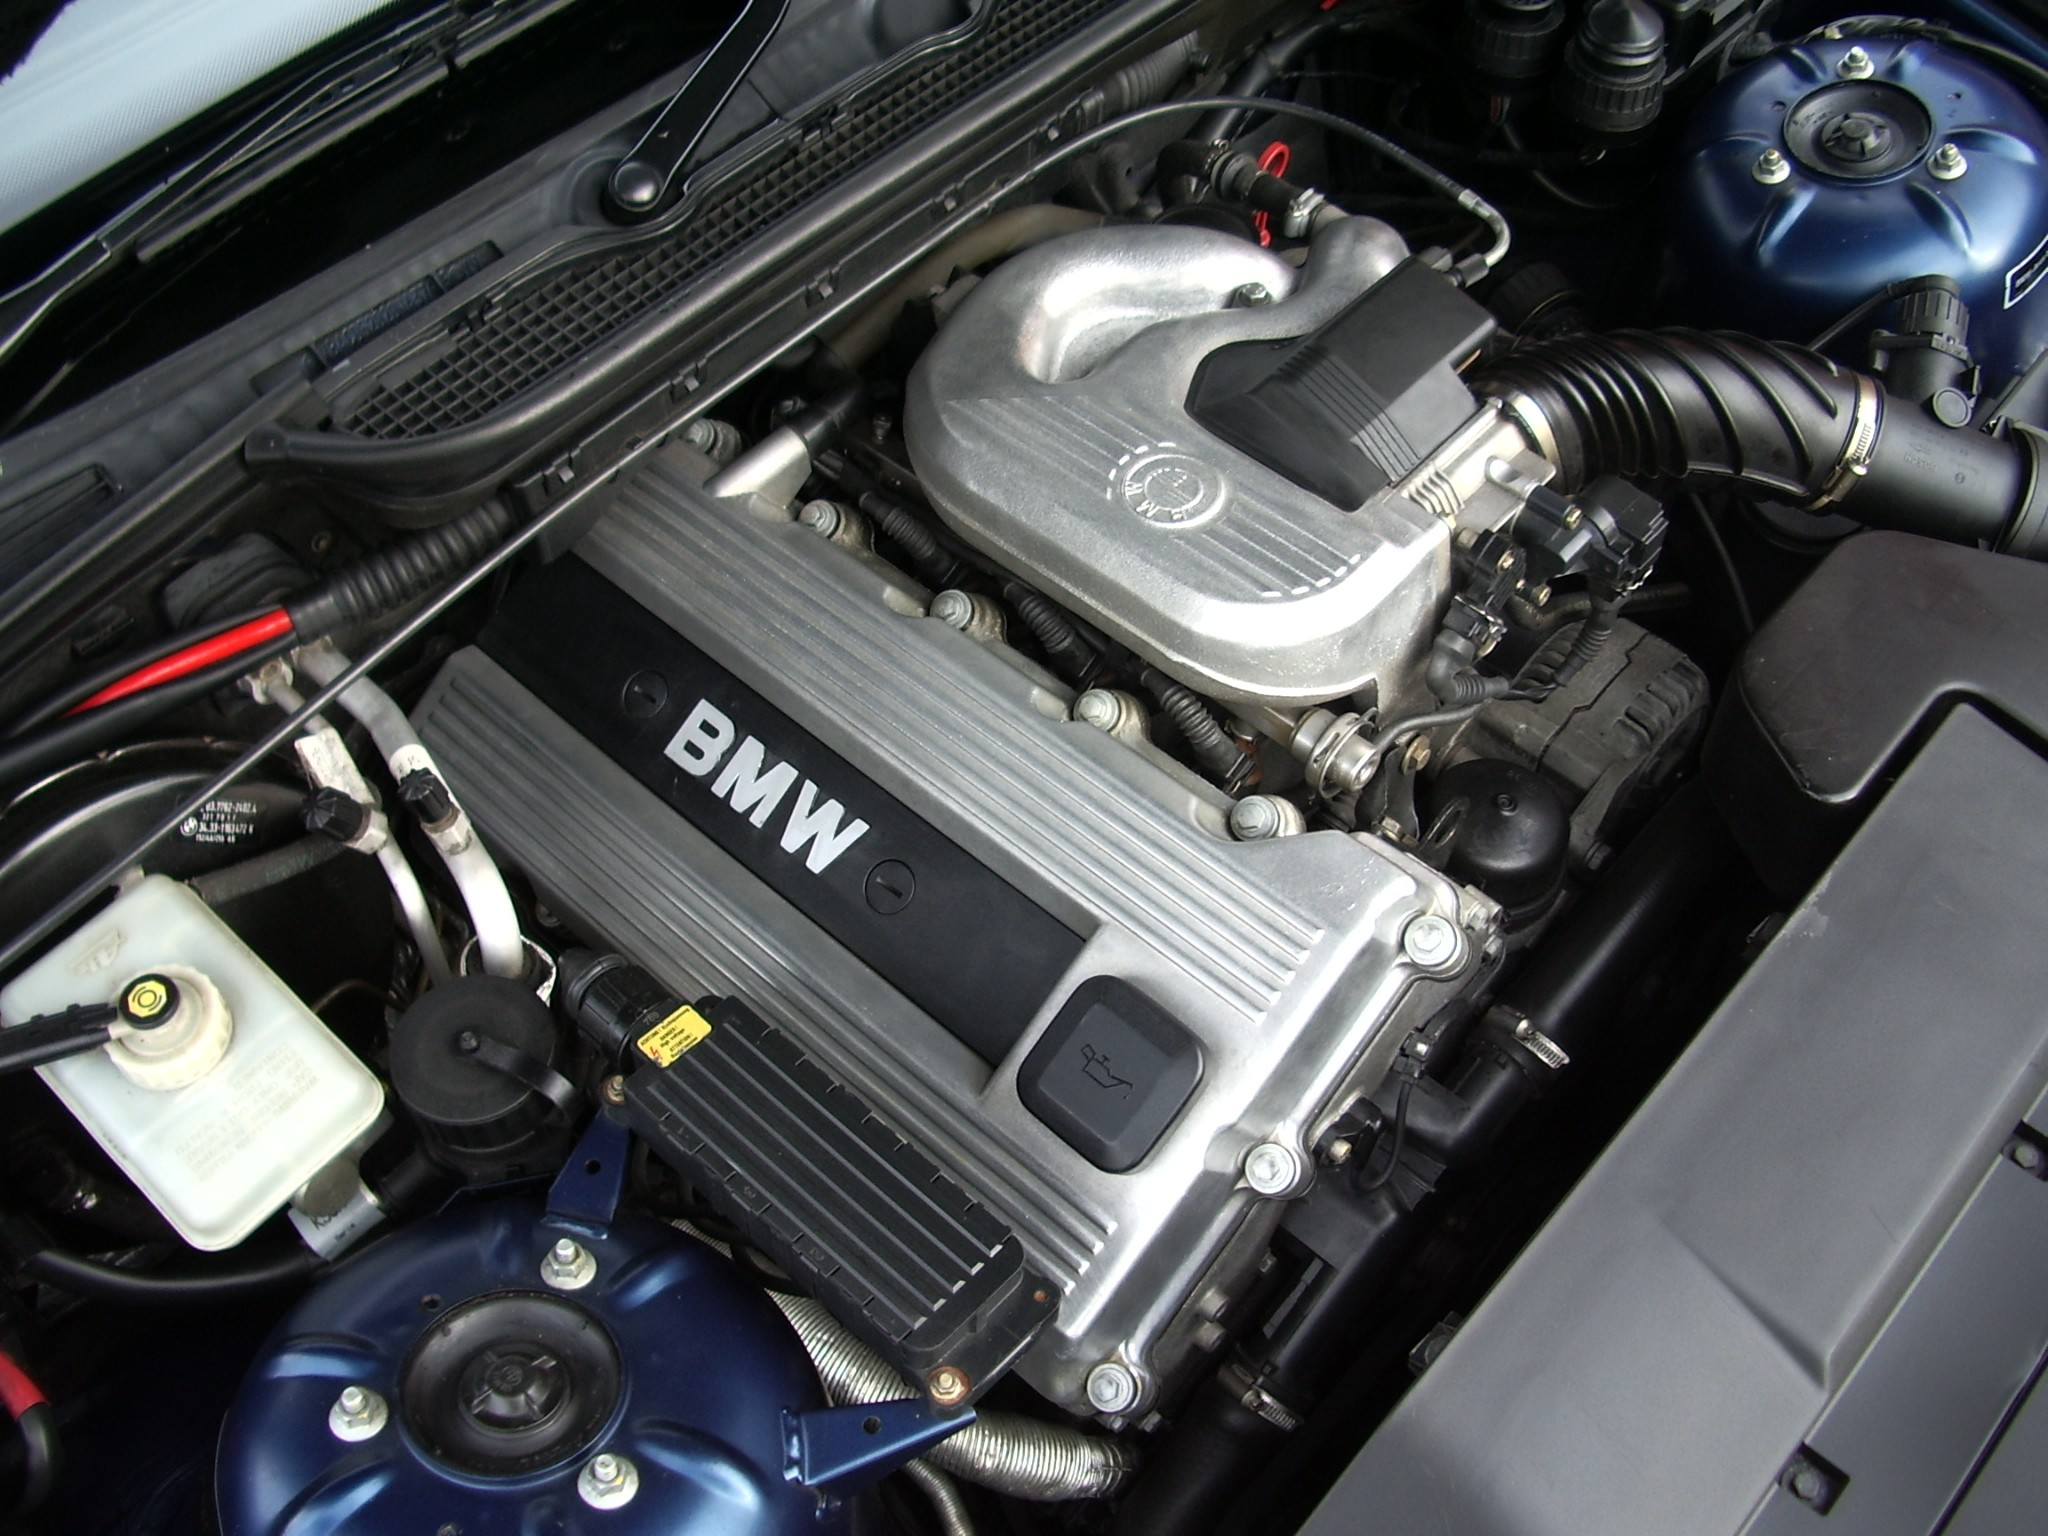 bmw m44 engine diagram bmw 318is engine bay m44 16valve dohc rh detoxicrecenze com BMW Engine Parts Diagram BMW Engine Parts Diagram